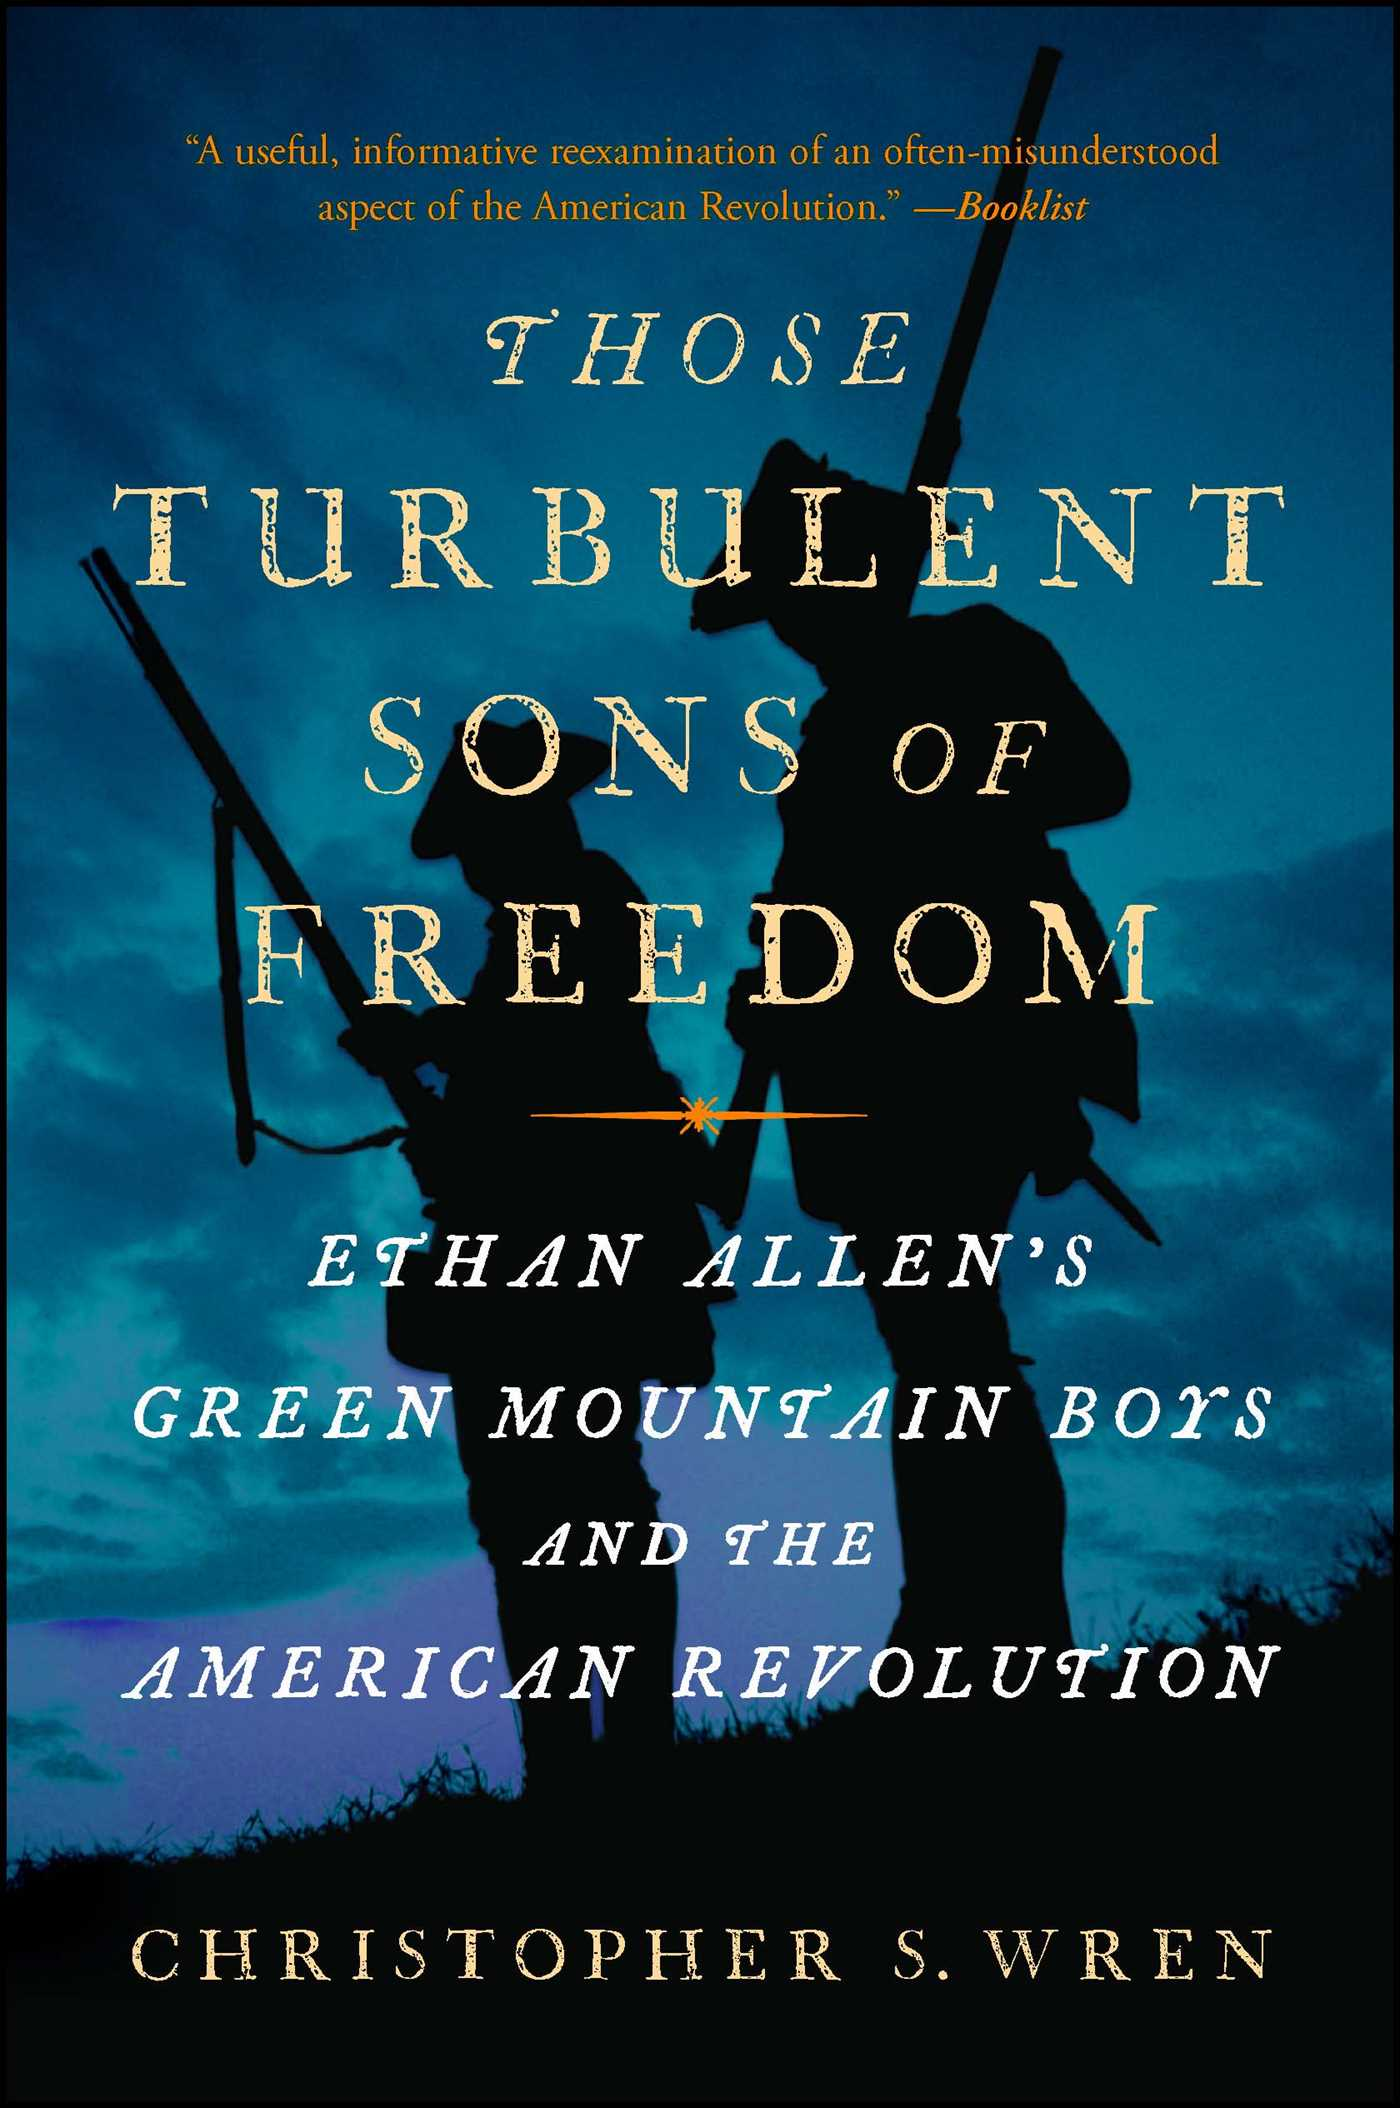 Those Turbulent Sons of Freedom | Book by Christopher S